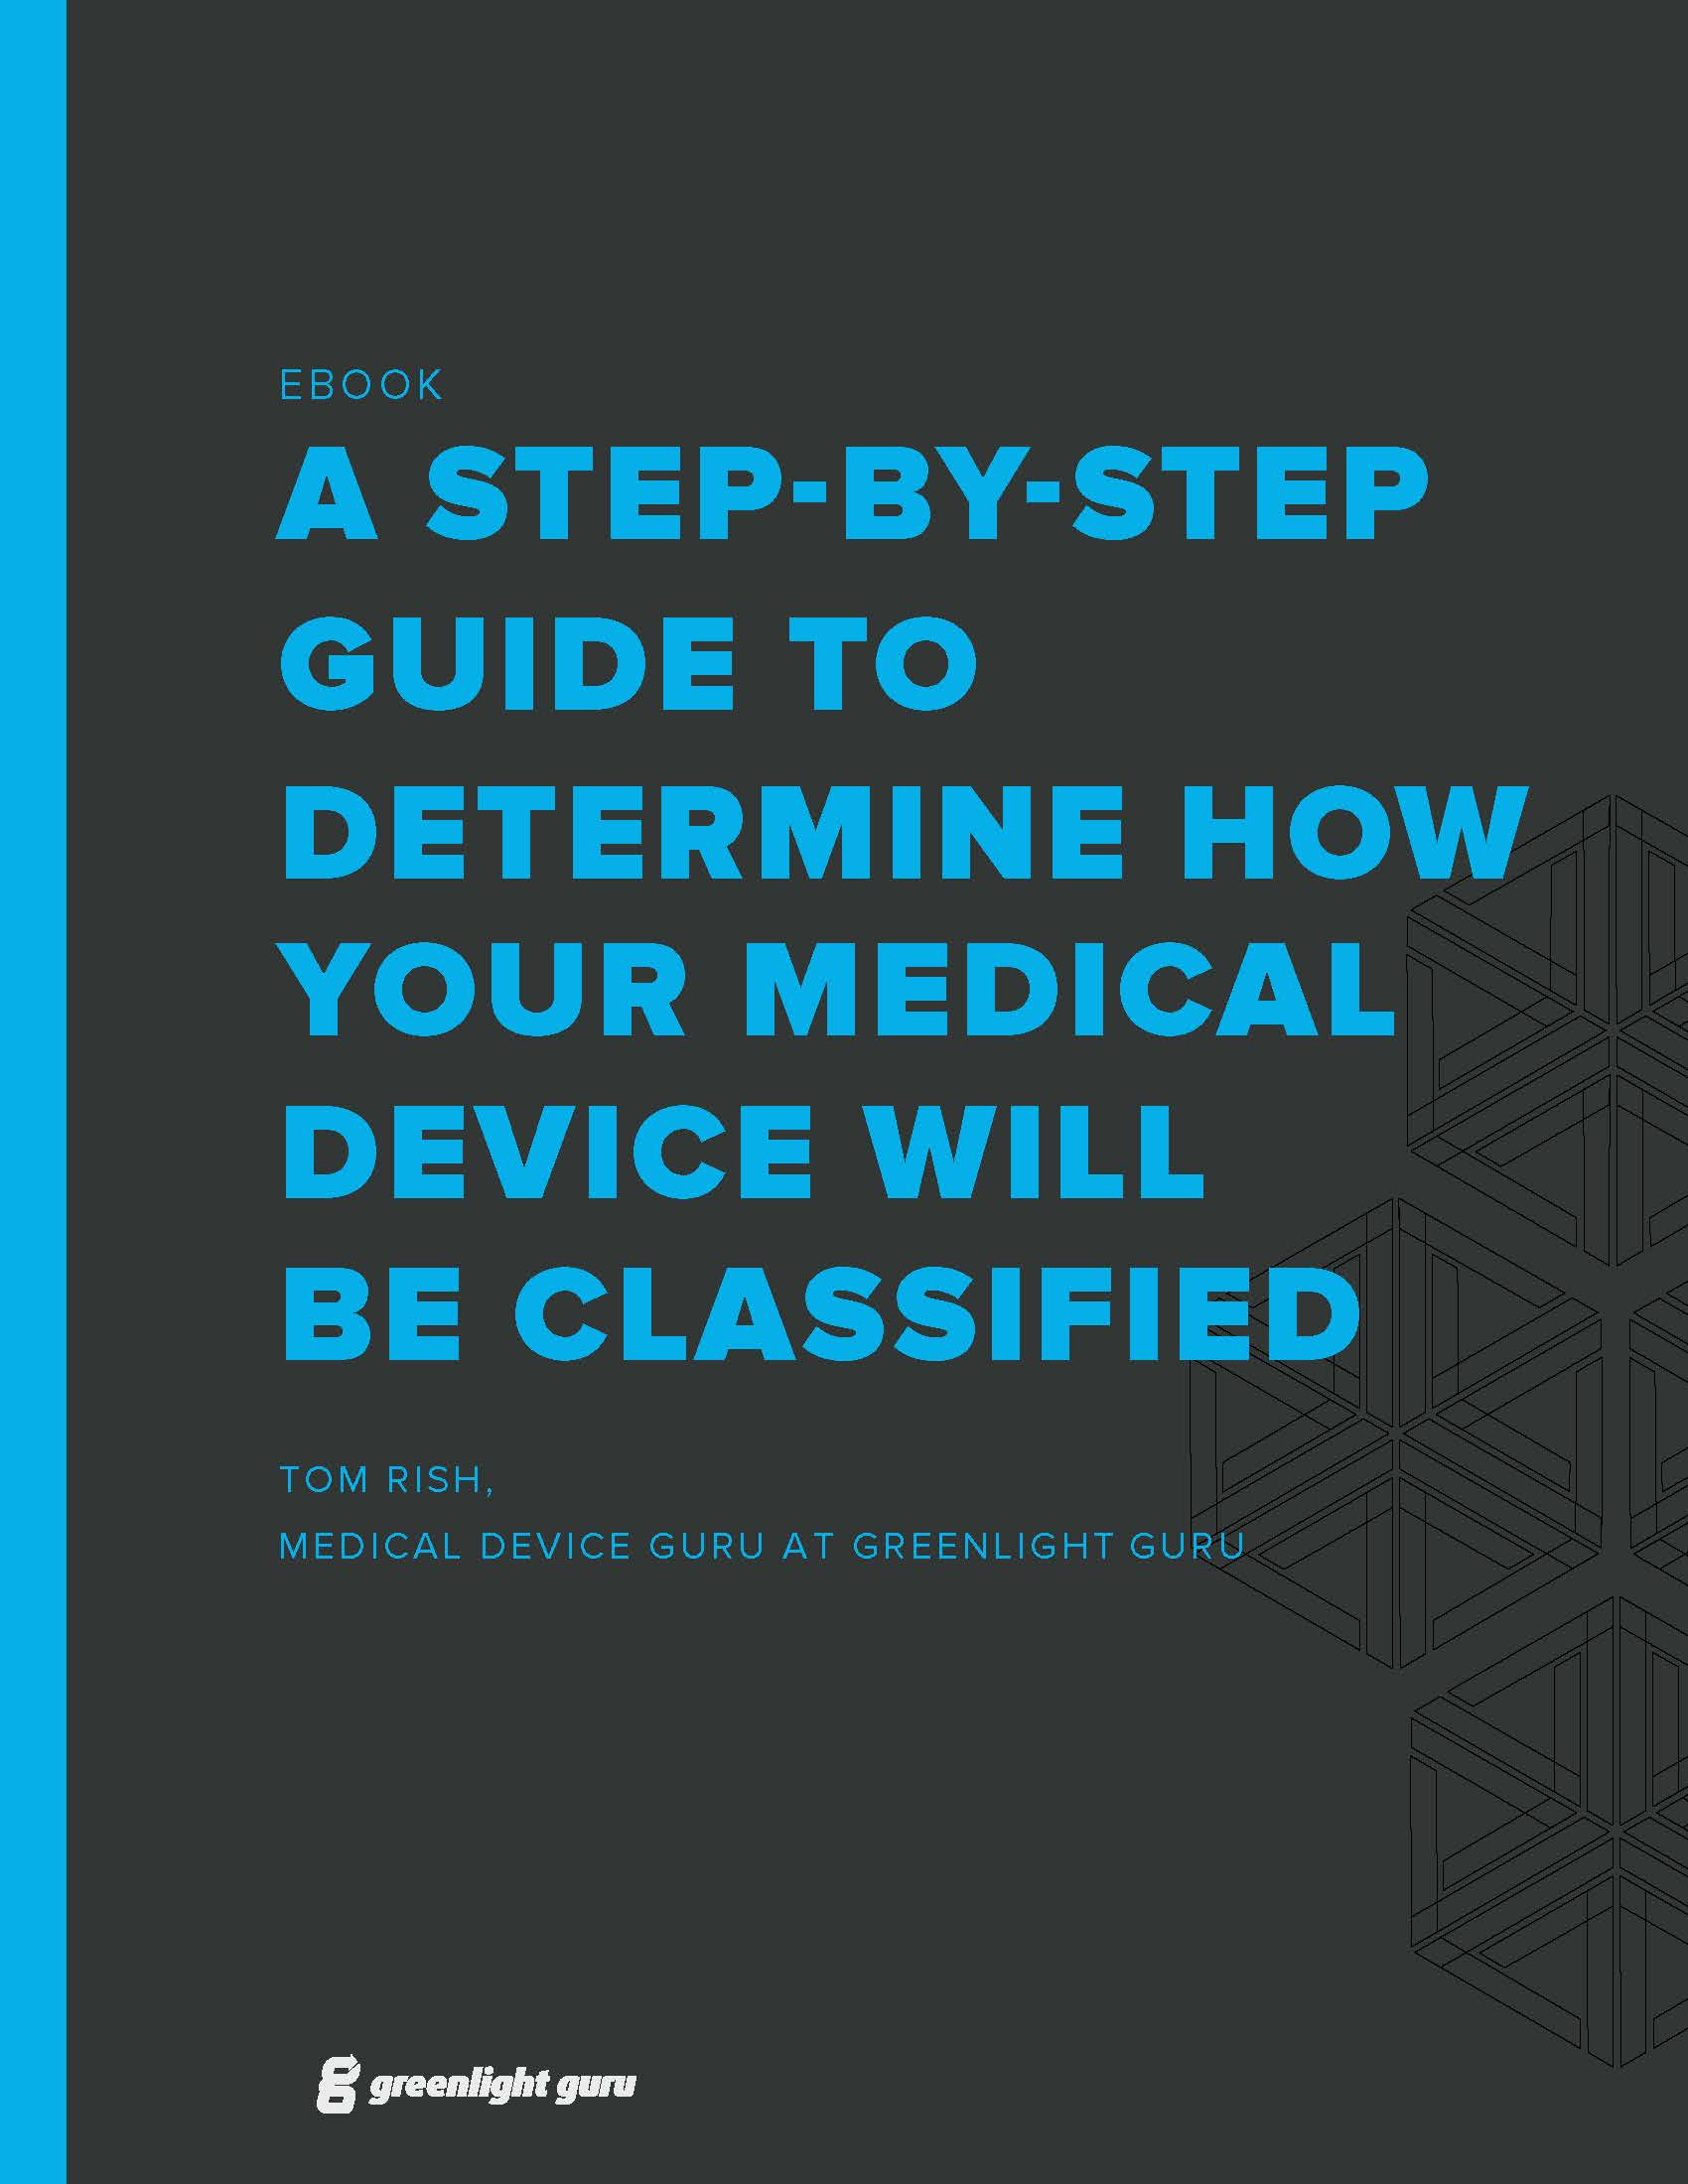 ebook download of medical device classification guide